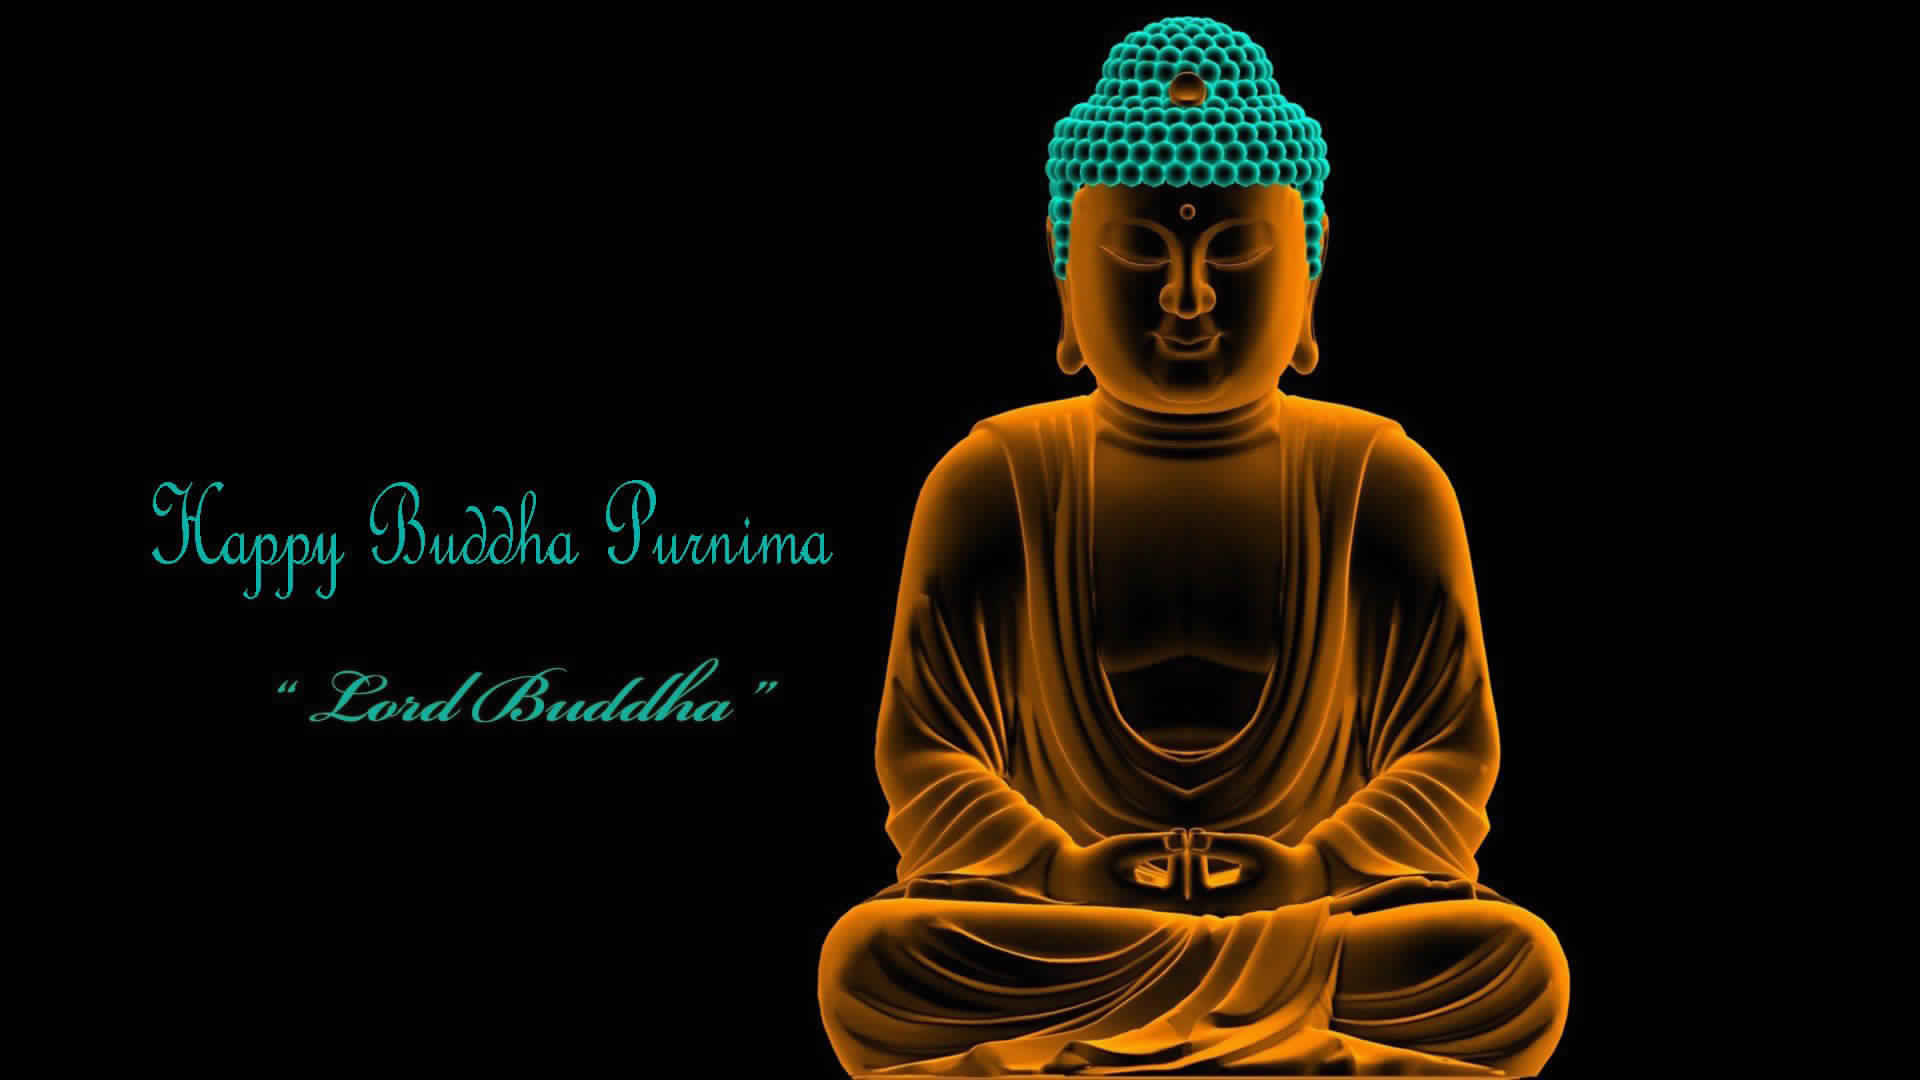 Buddha Purnima Hd Wallpapers For Whatsapp Fb Instagram Pinterest